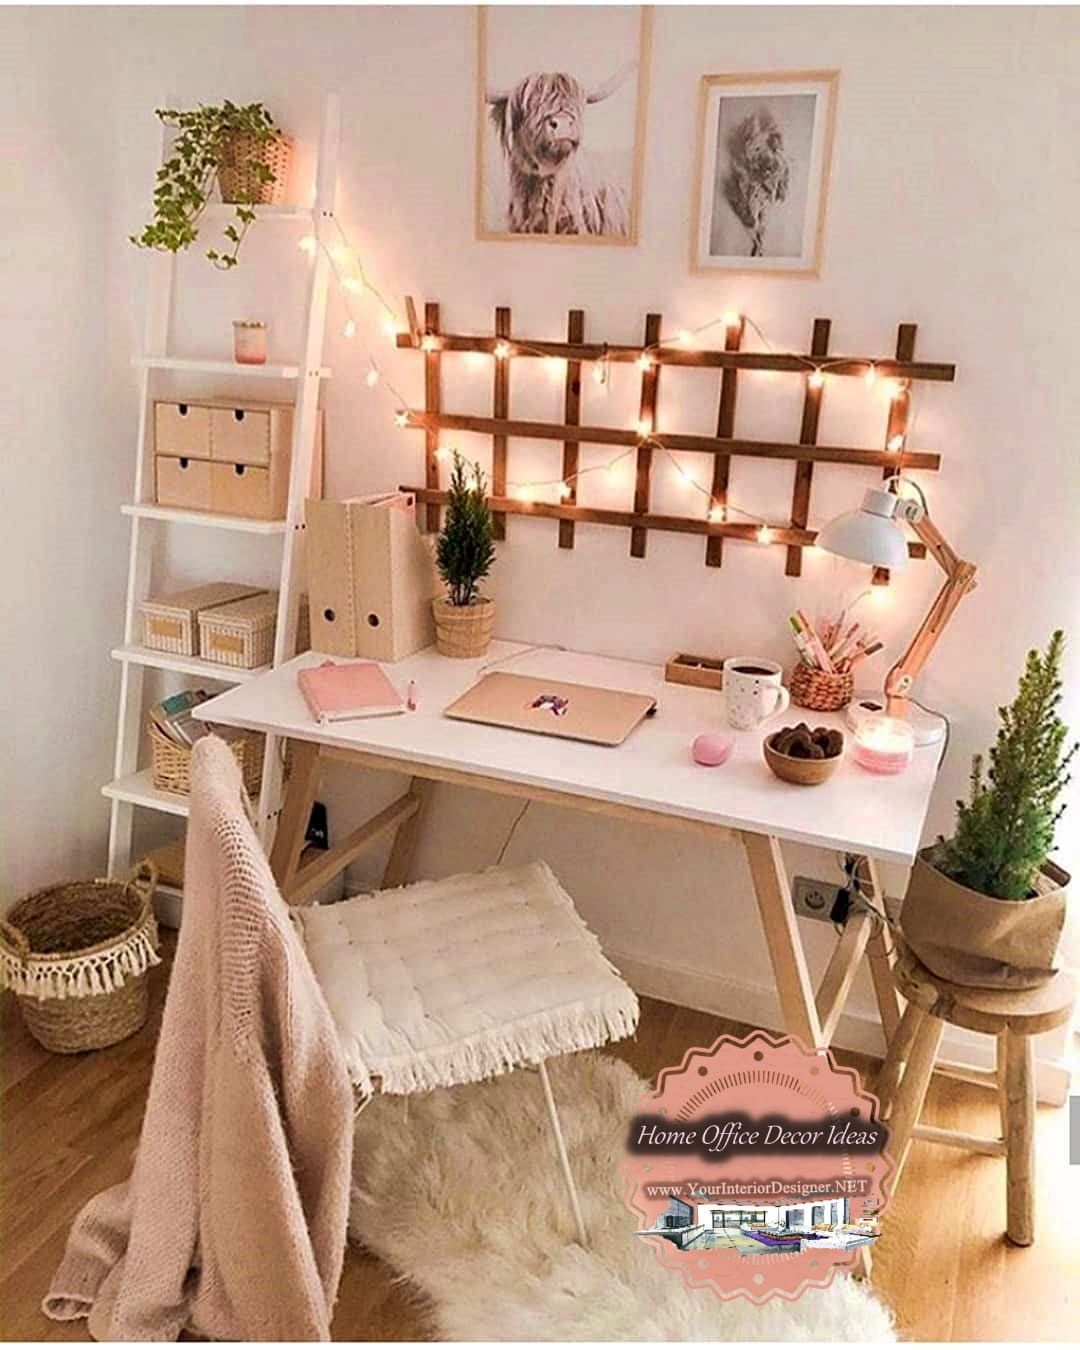 66 Unique Decor and Design Ideas For Home Office Workers | Page 12 of 68 | Your Interior Designer